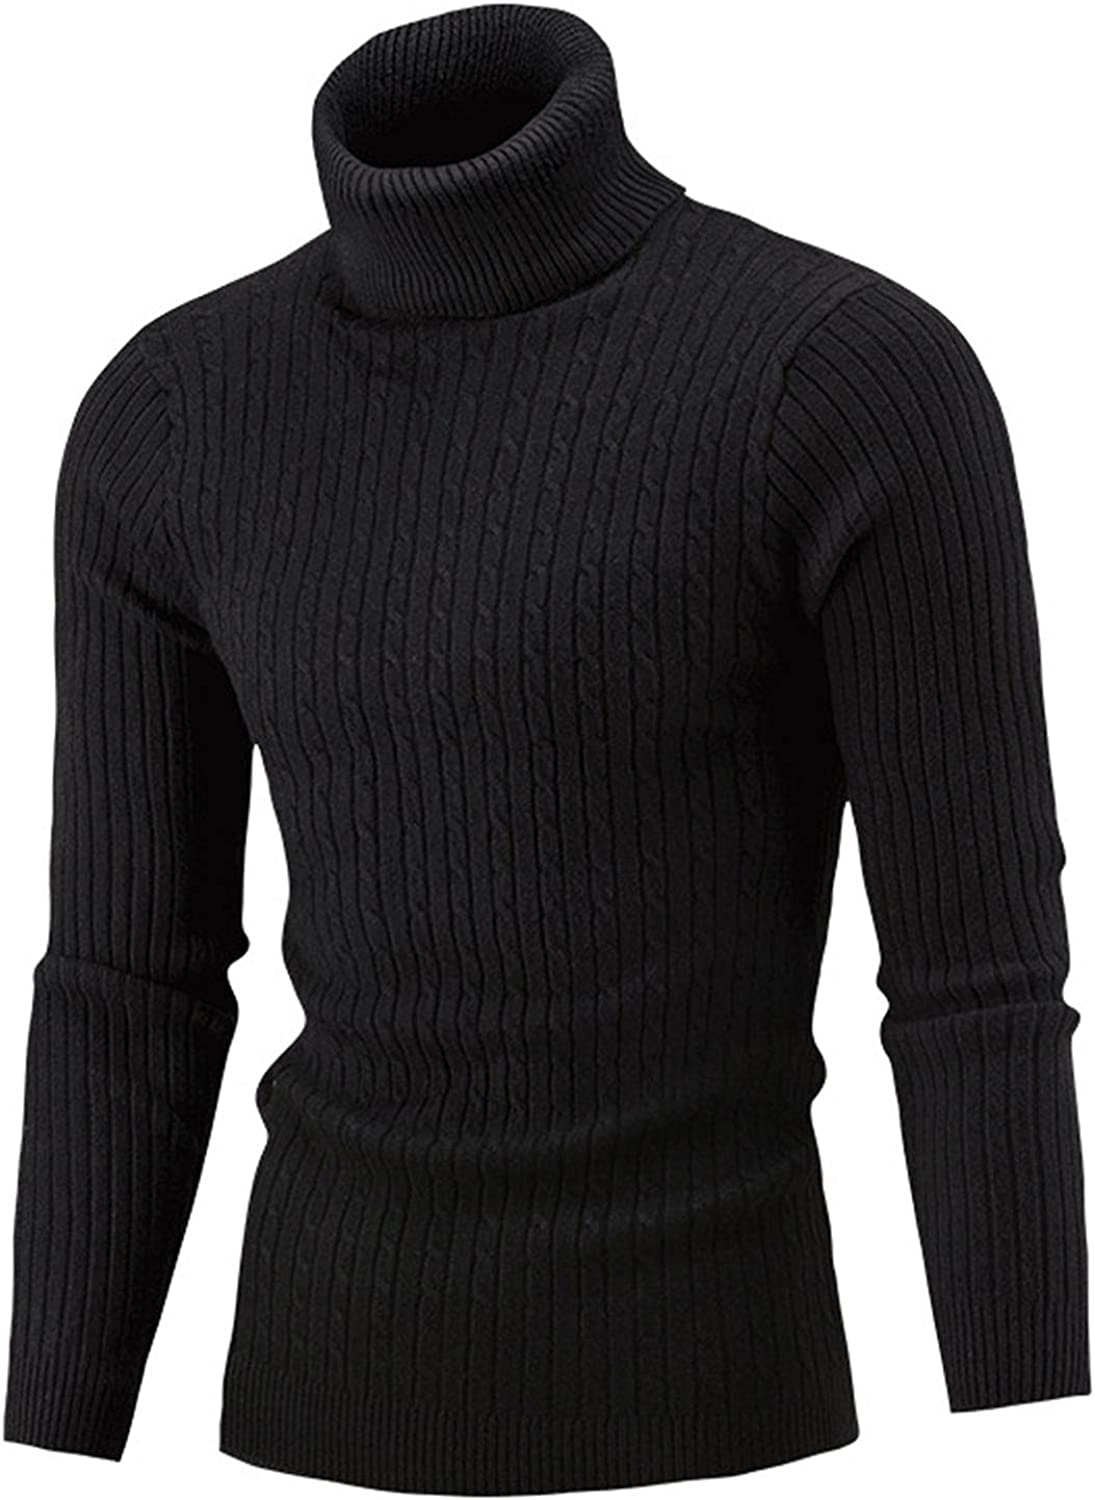 LEIYAN Mens Knit Sweaters Casual Turtleneck Long Sleeve Slim Fit Cable Knit Sweater Winter Thermal Knitwear